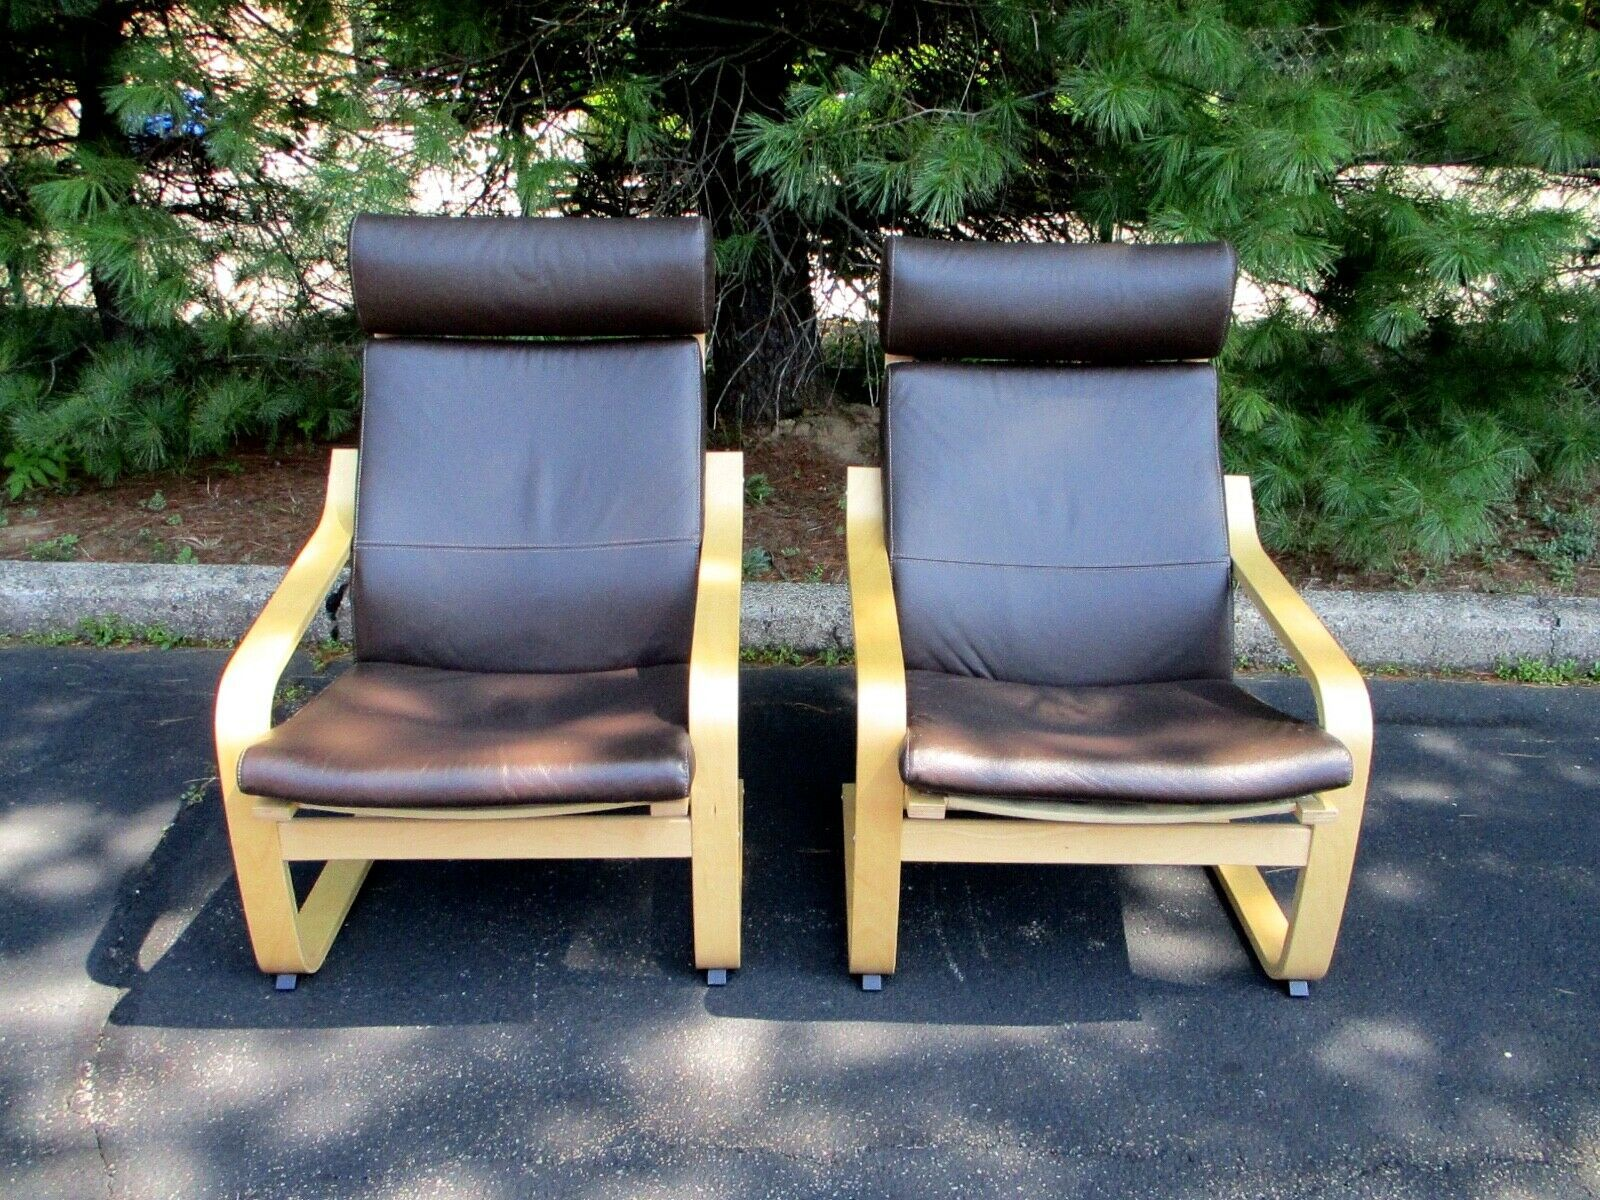 Ikea Poang Dark Brown Leather Cushion Lounge Chair Pair Excellent Chair Bedroom Ideas Of Chair Bedroom Bedroom Chair Ikea Bedroom Furniture Ikea Bedroom